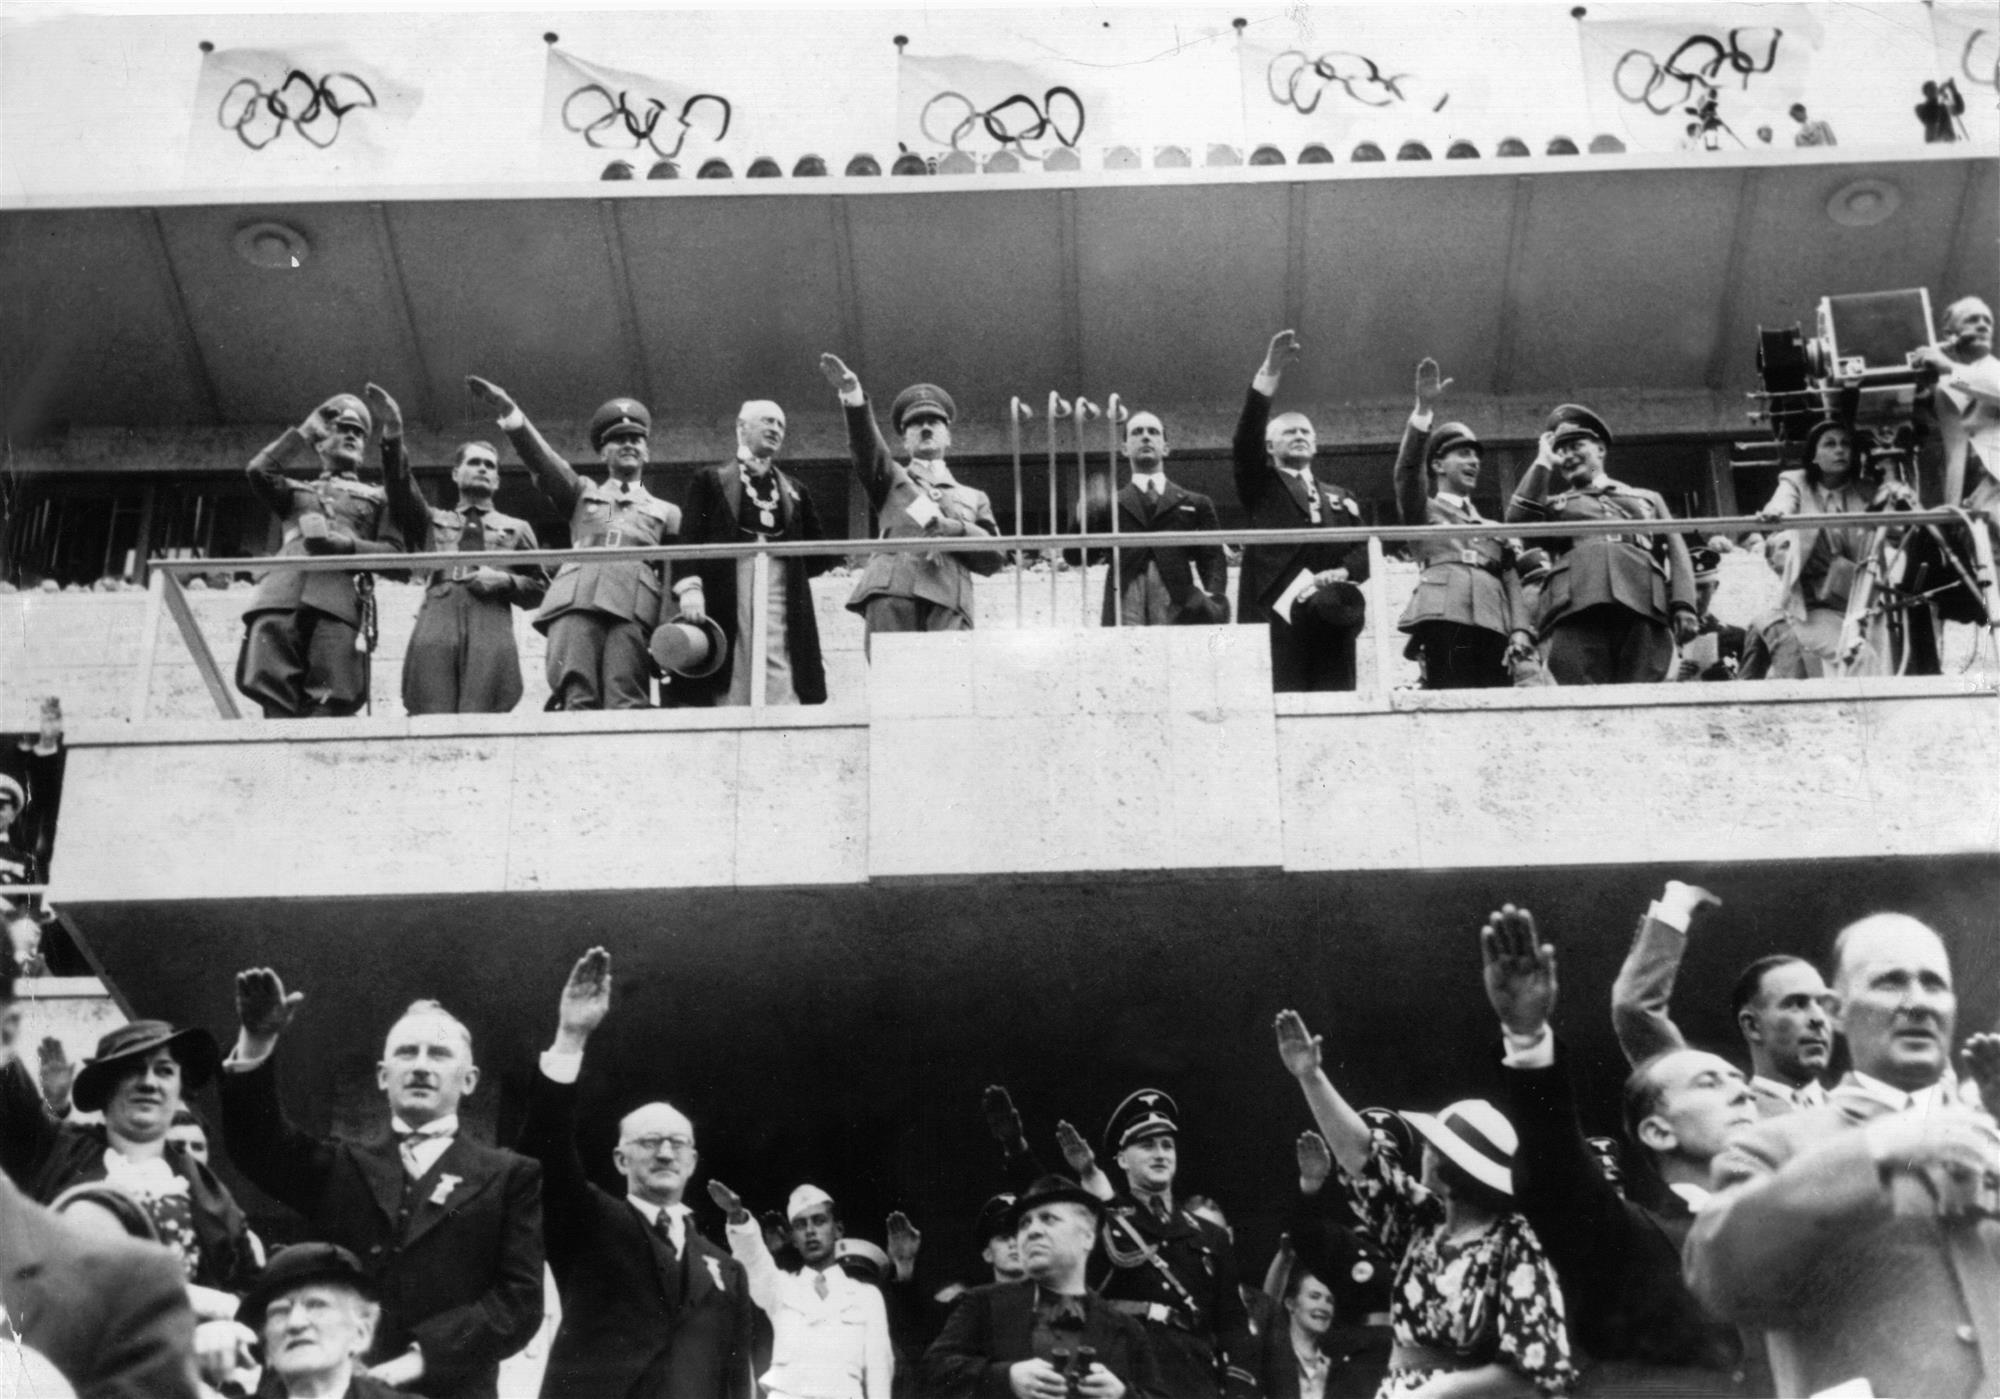 berlin5. Adolf Hitler y sus secuaces